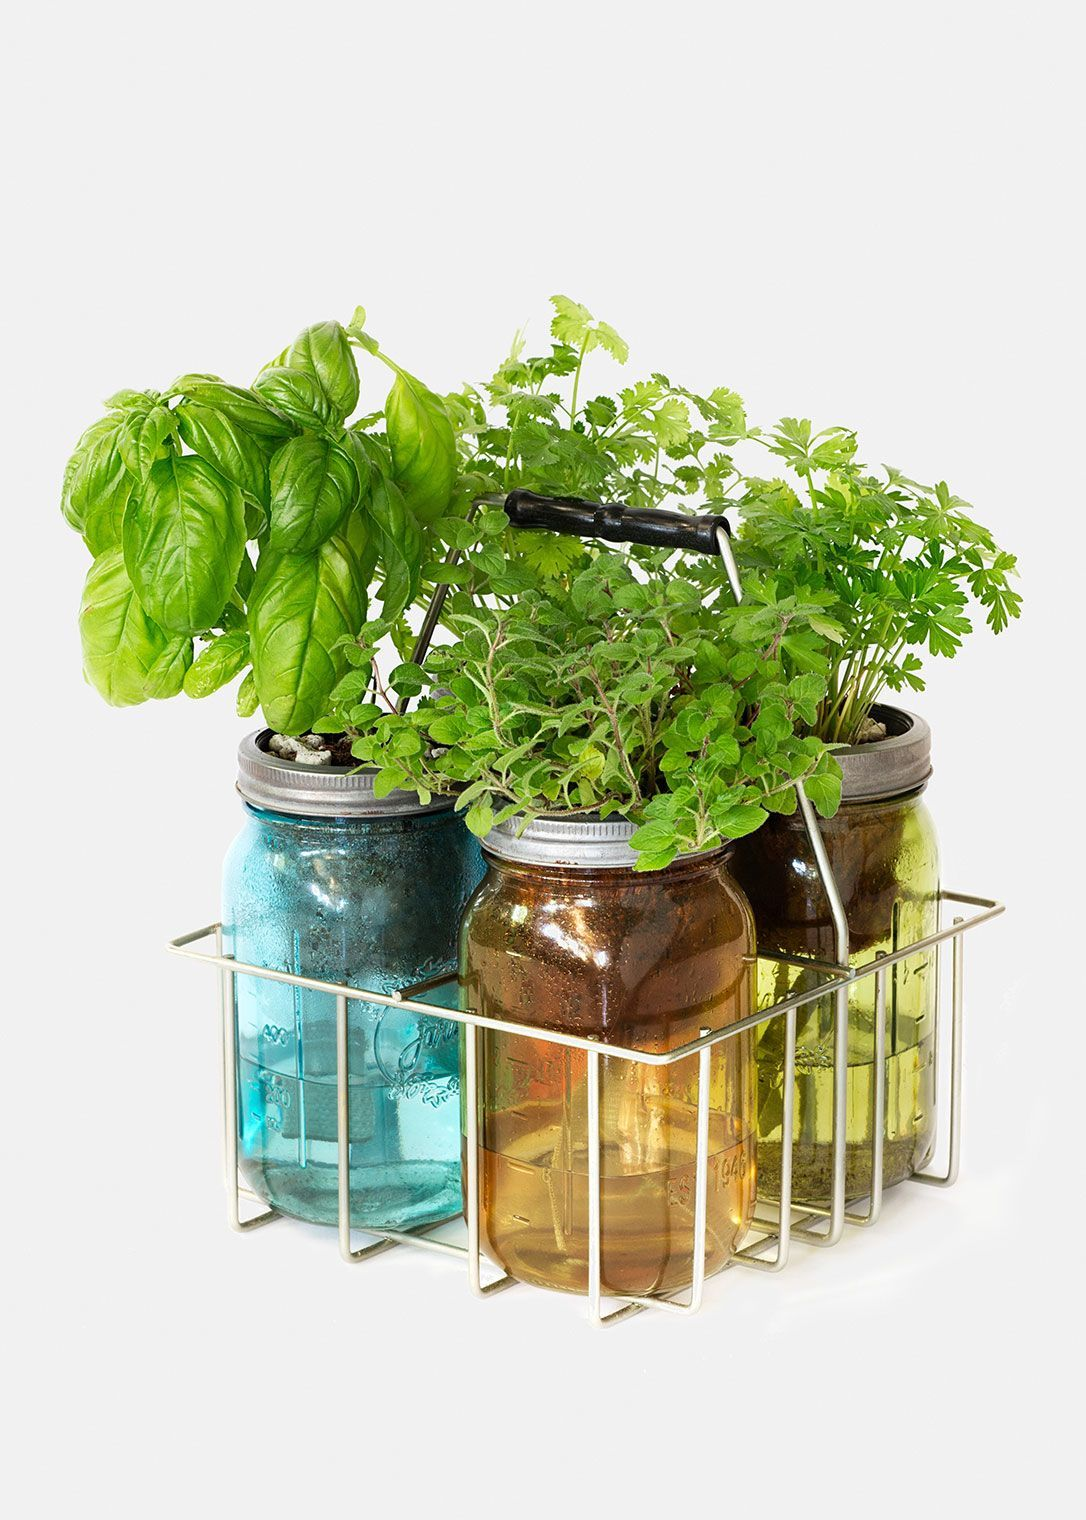 These Self Watering Herb Kits Are Simple To Use Sustaining And